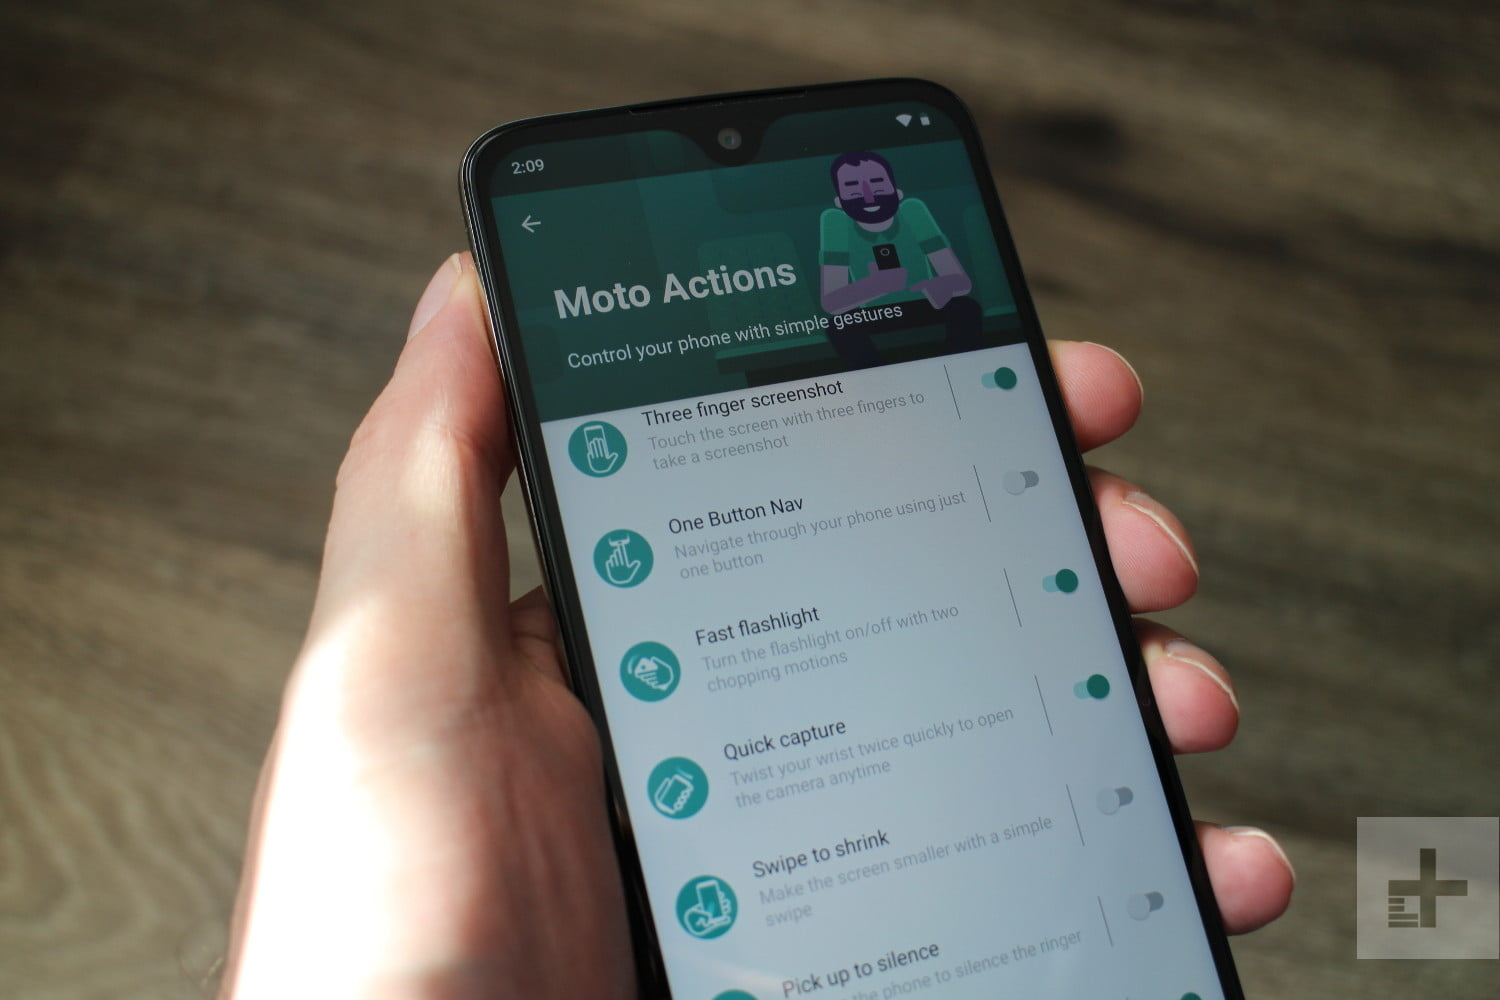 Moto G7, Power, Play, or Plus: 10 Key Settings to Change